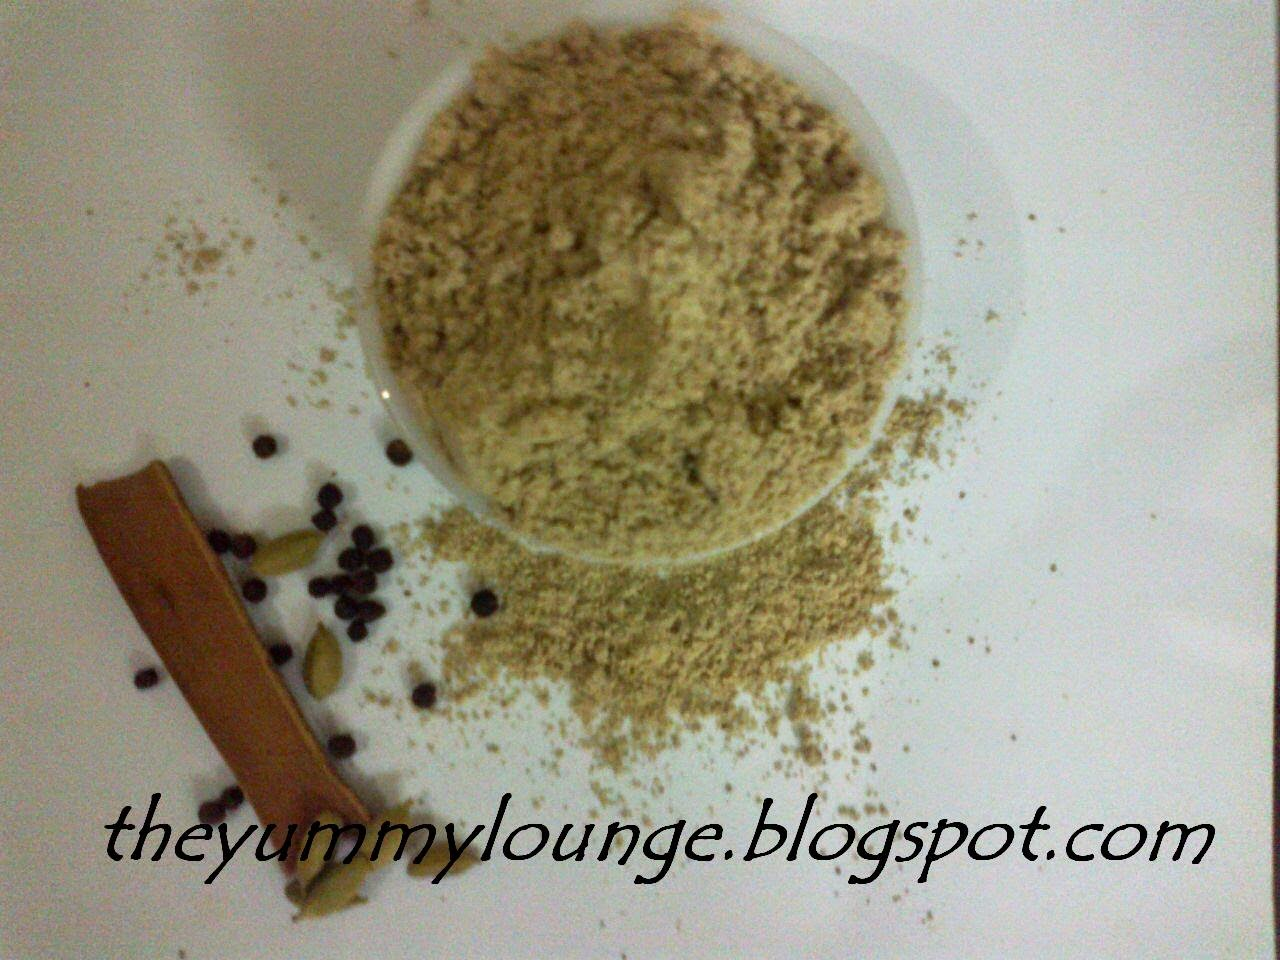 Homemade Masala Chai Powder - Masala Tea Powder Recipe